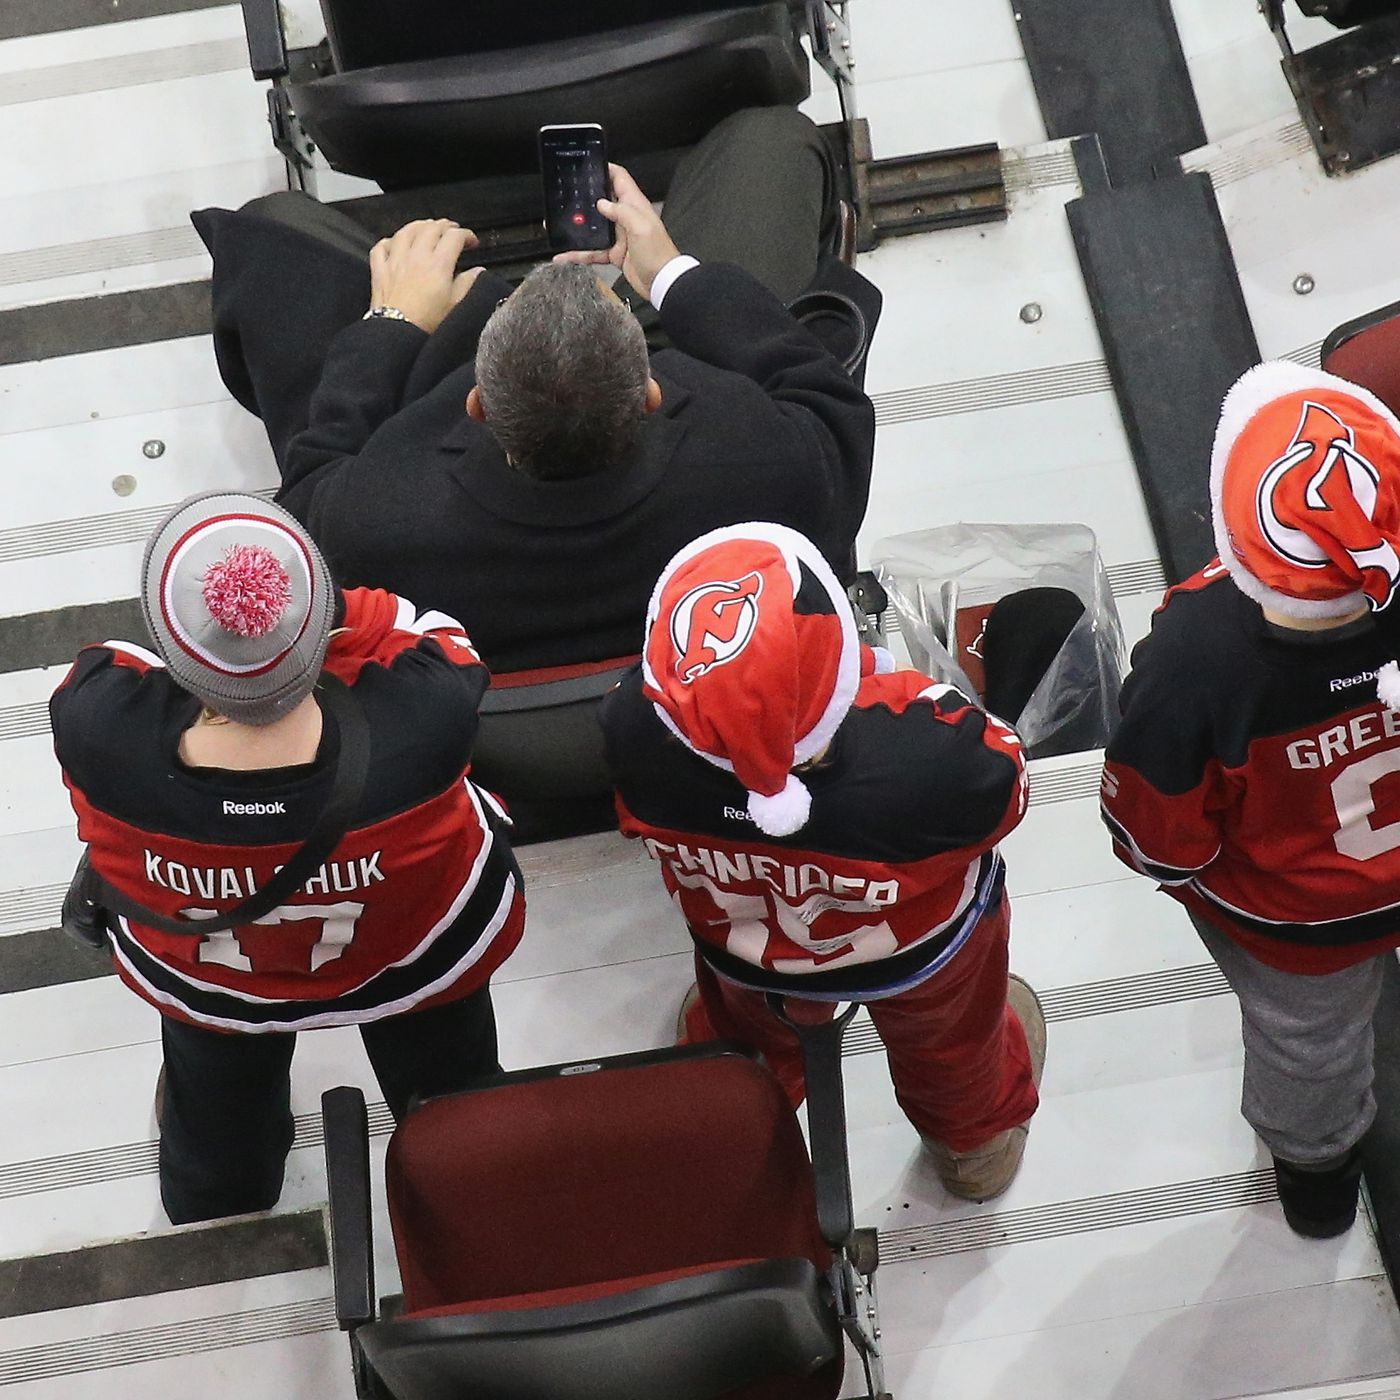 New Jersey Devils 2017 18 Ticket Prices for Members Are Available All About The Jersey